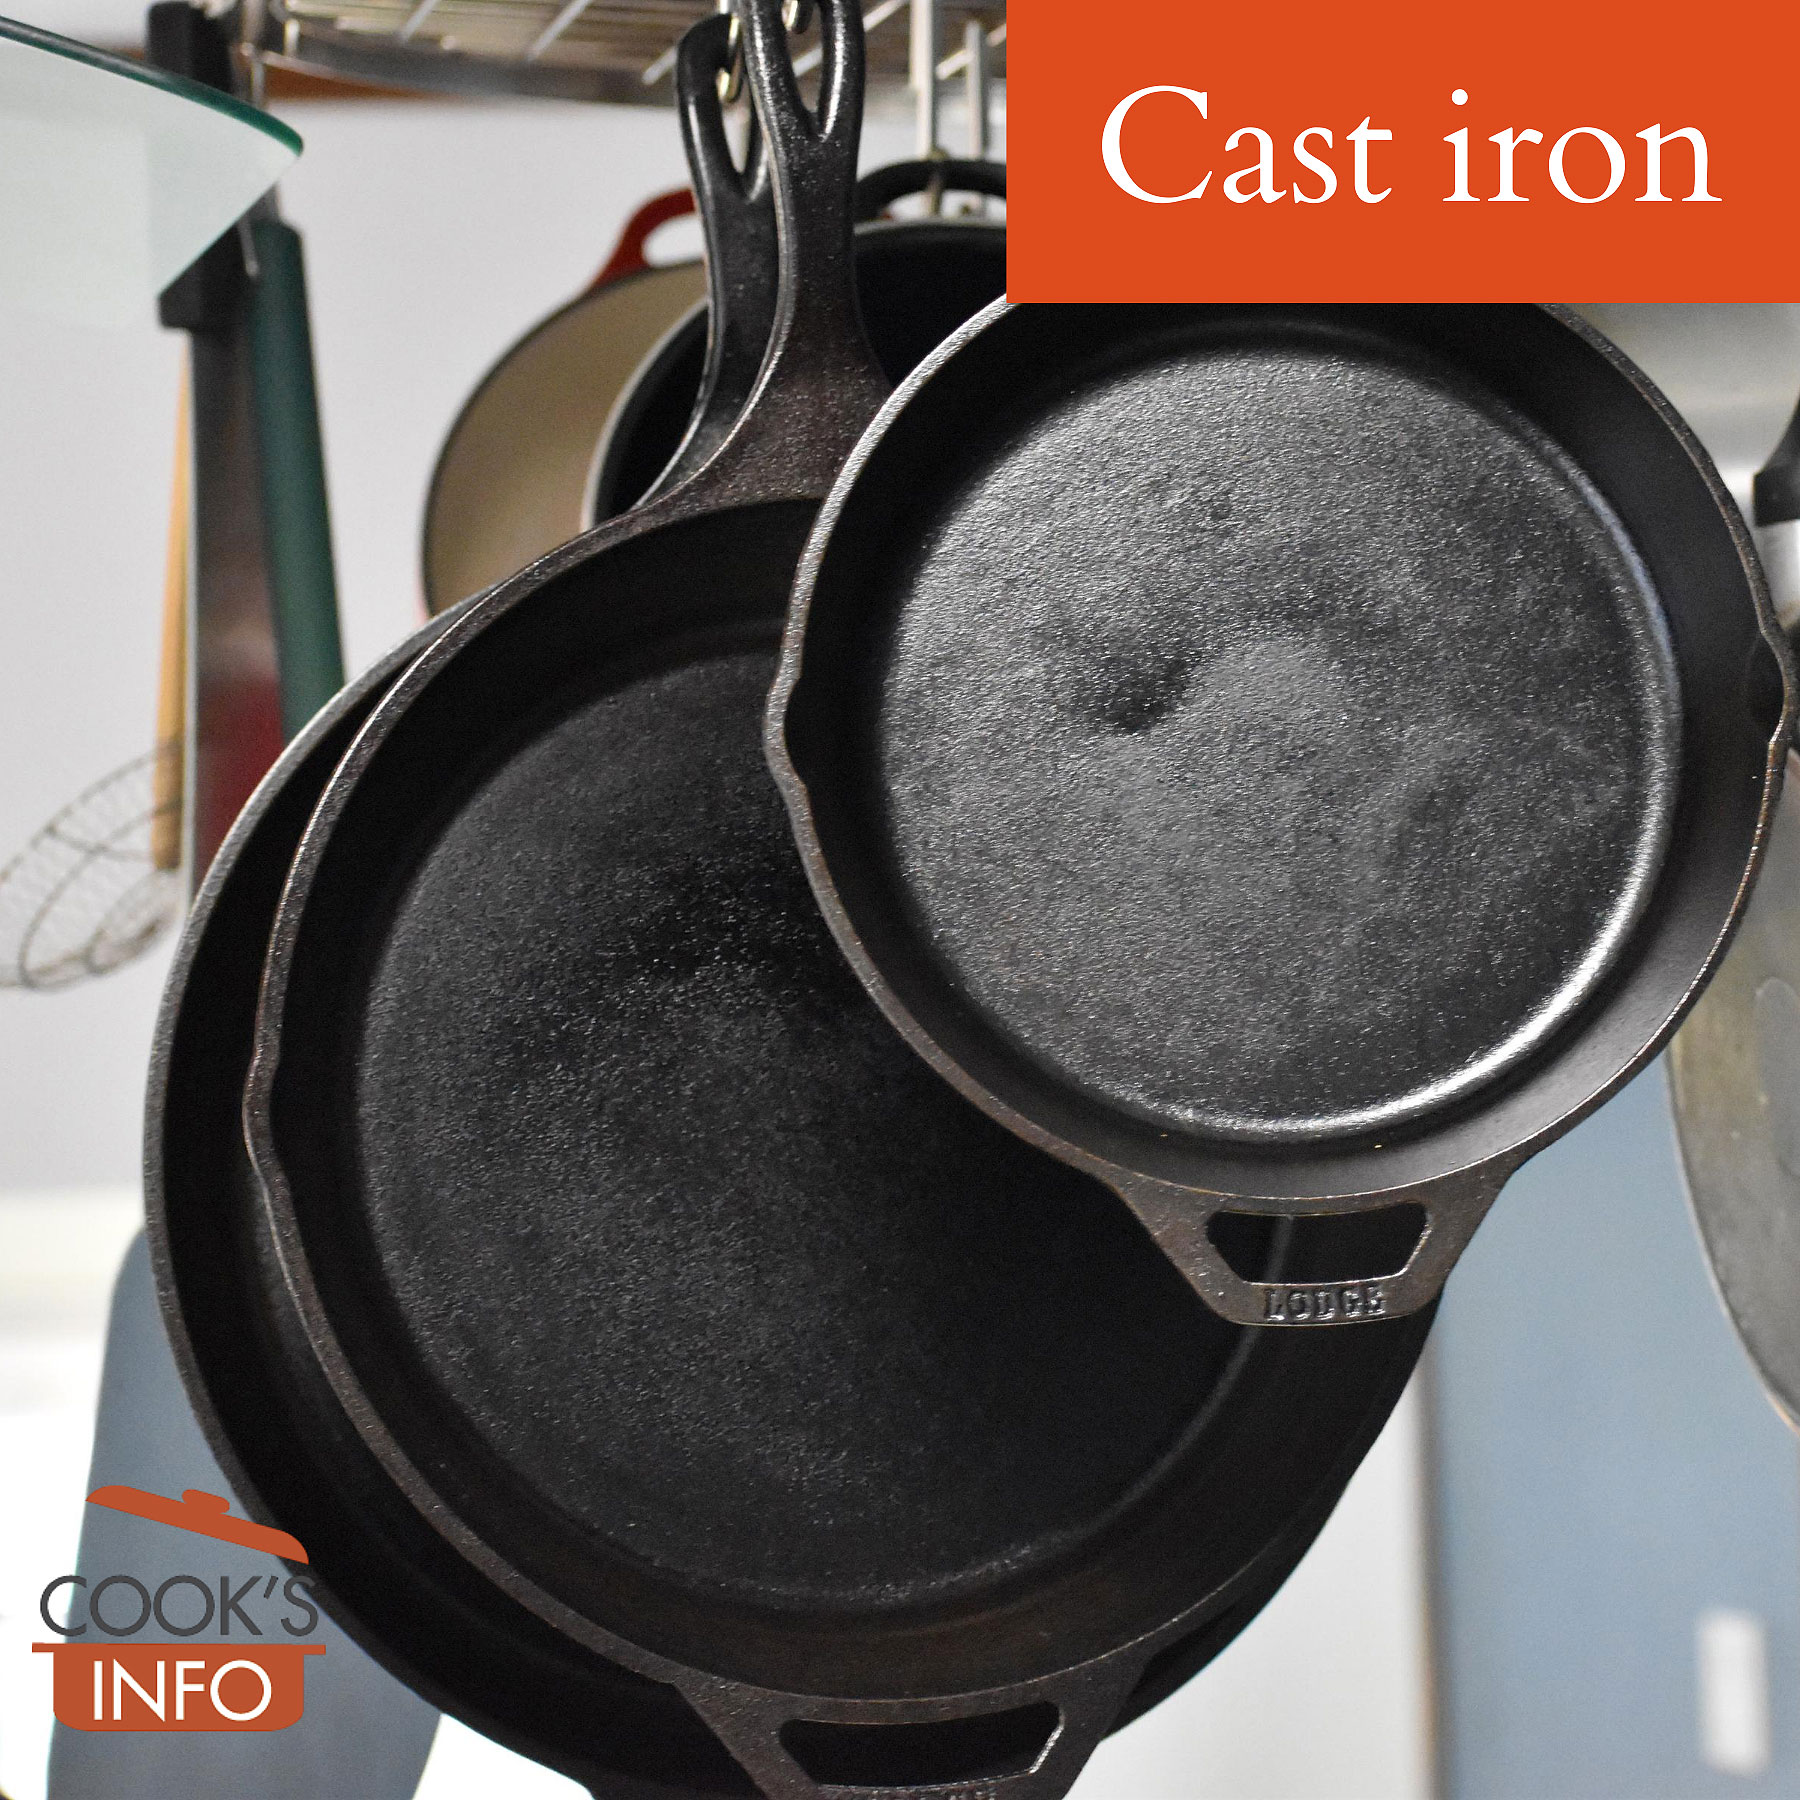 Cast iron frying pans.